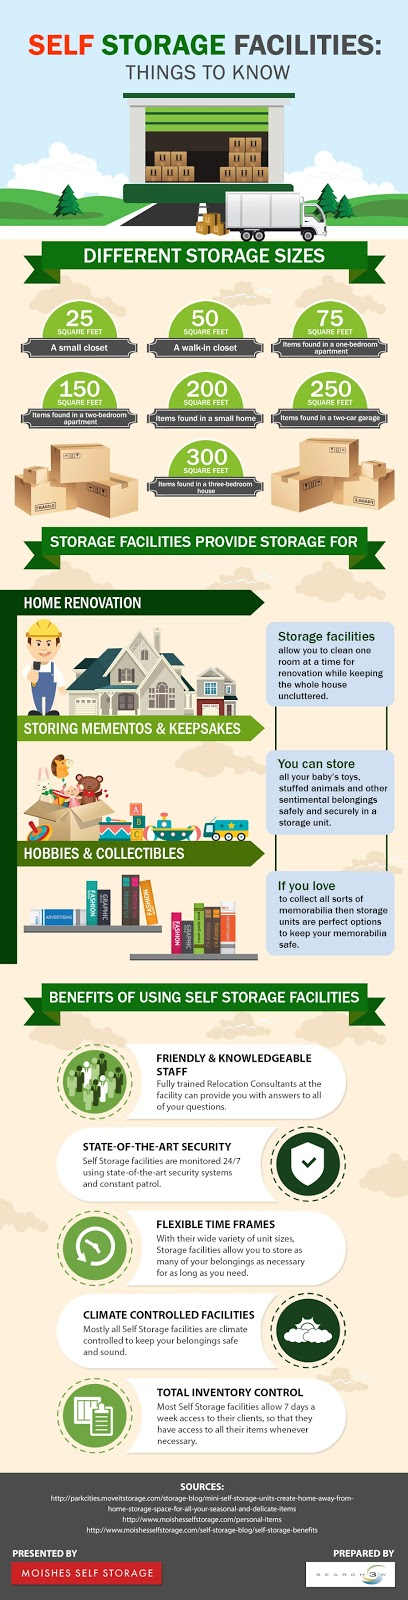 Self-Storage-Facilities-Things-to-Know-I